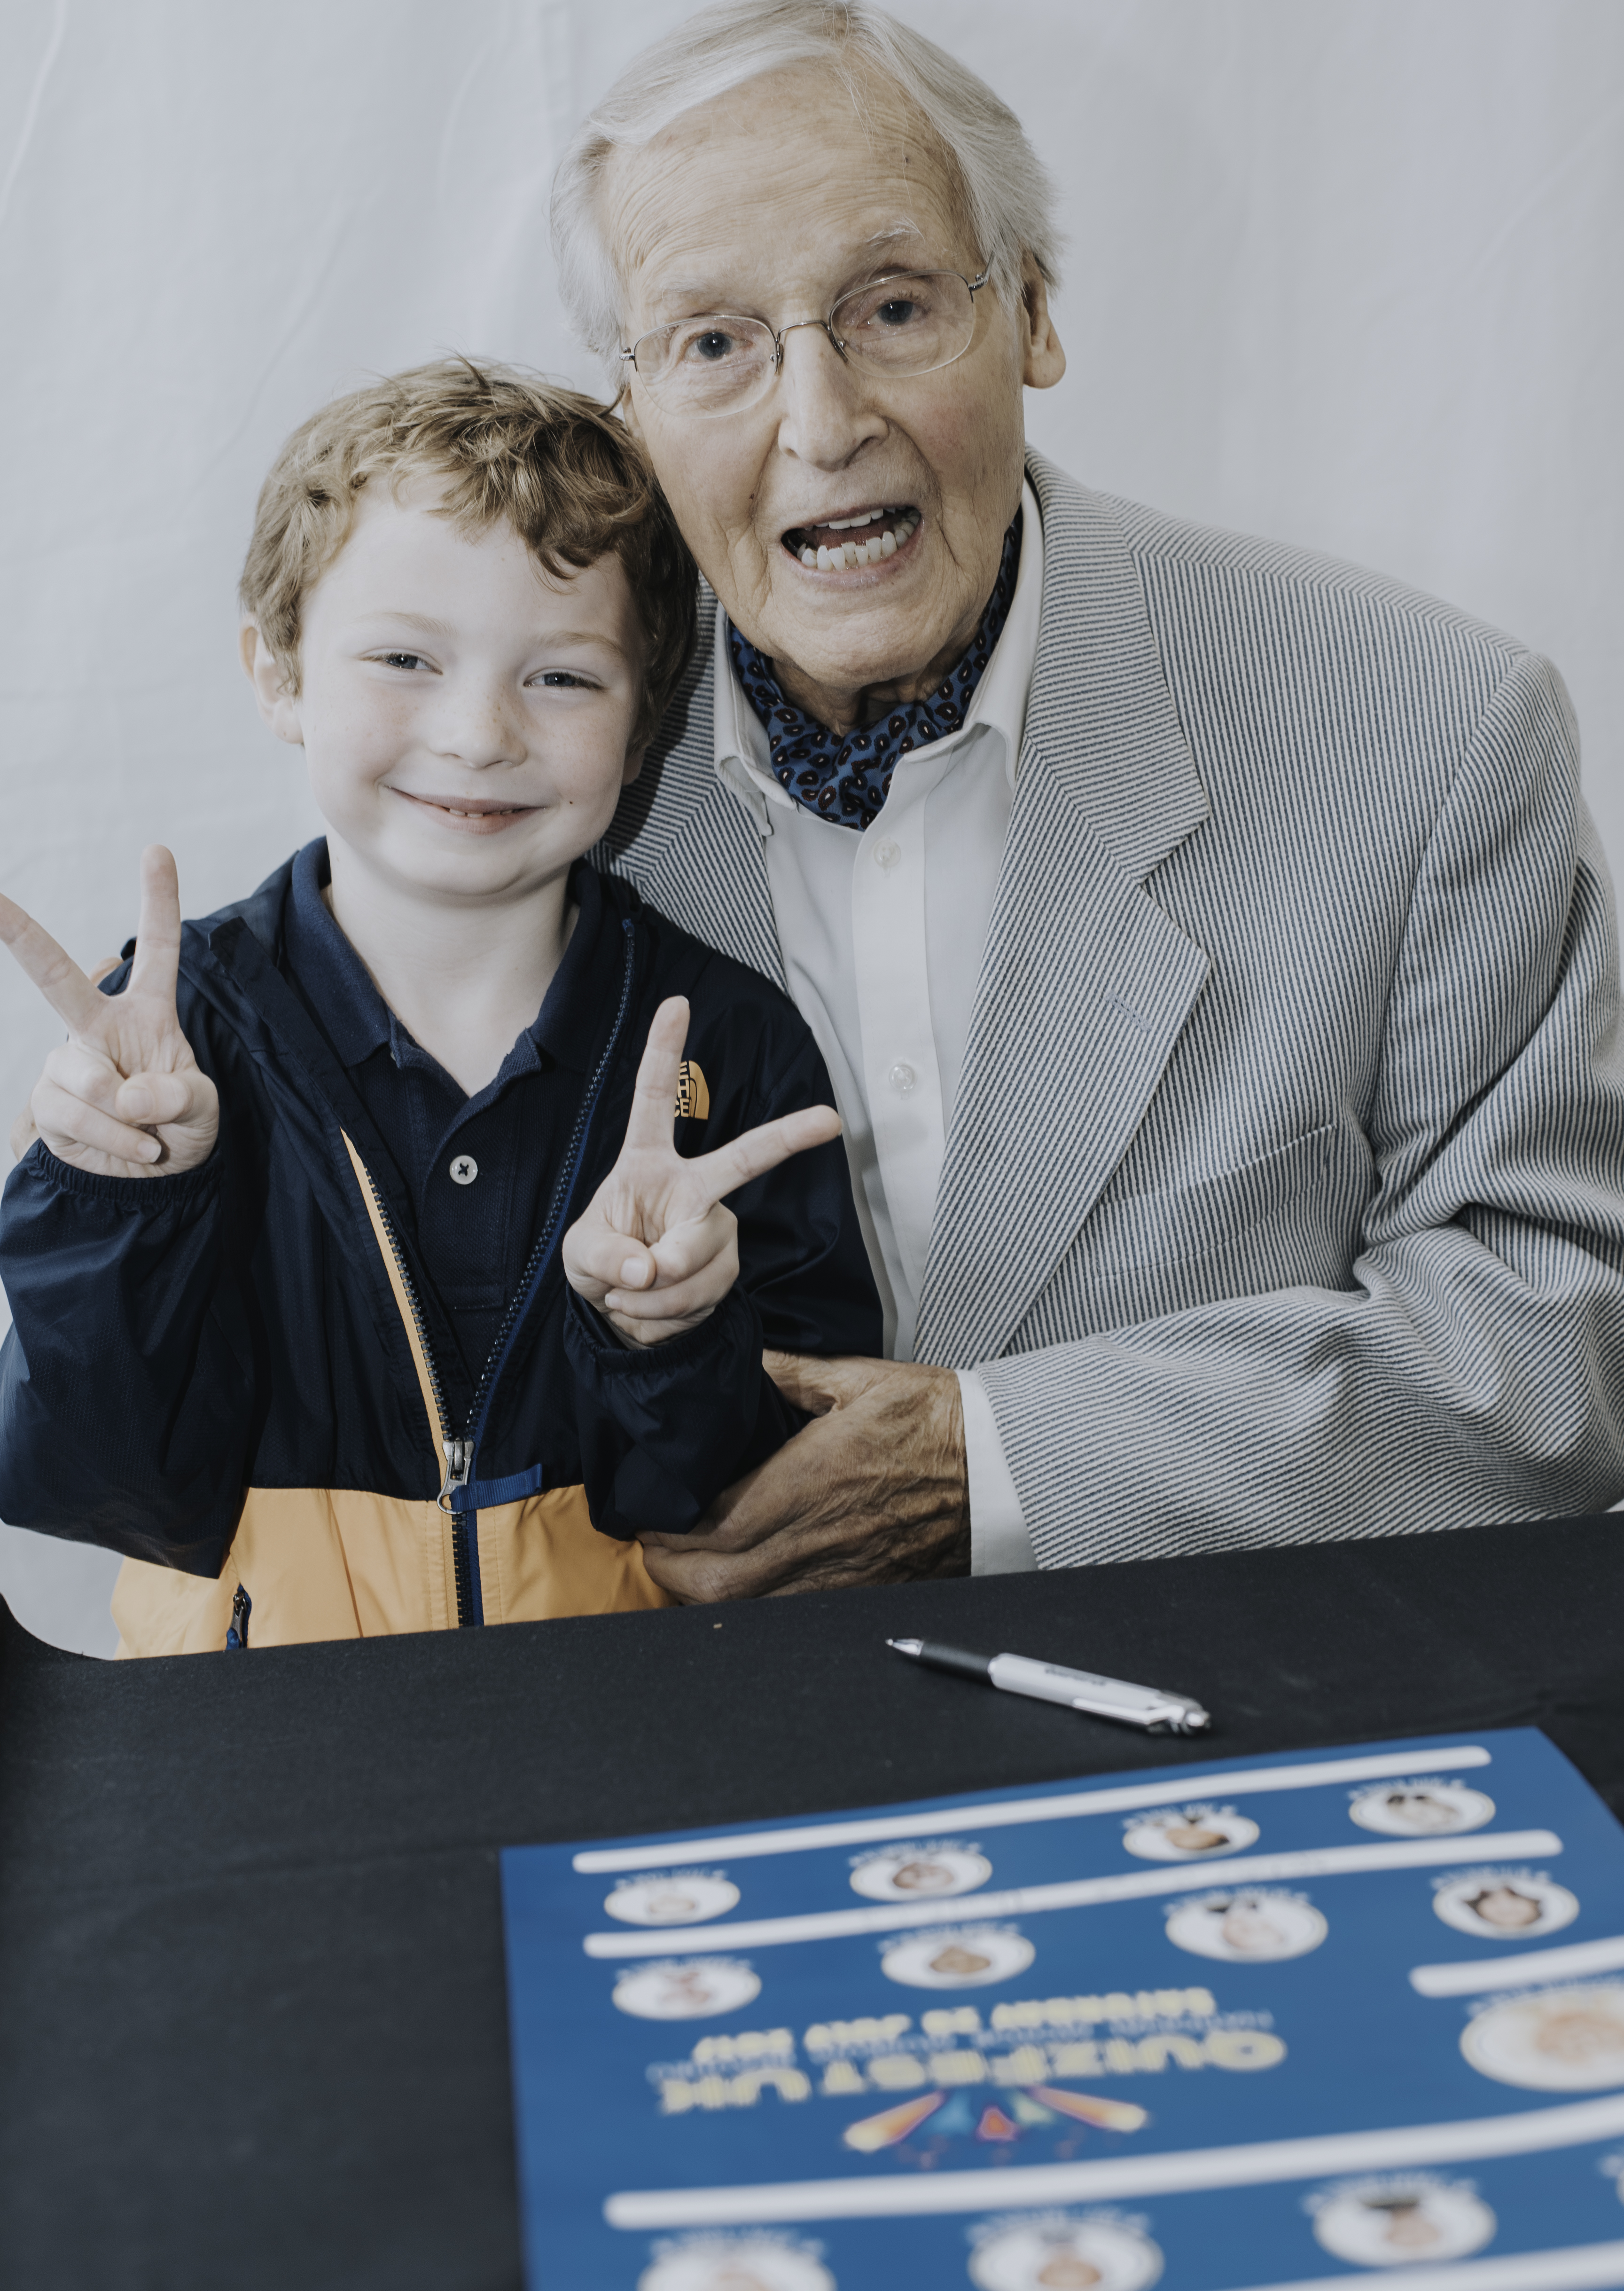 Nicholas Parsons with young fan